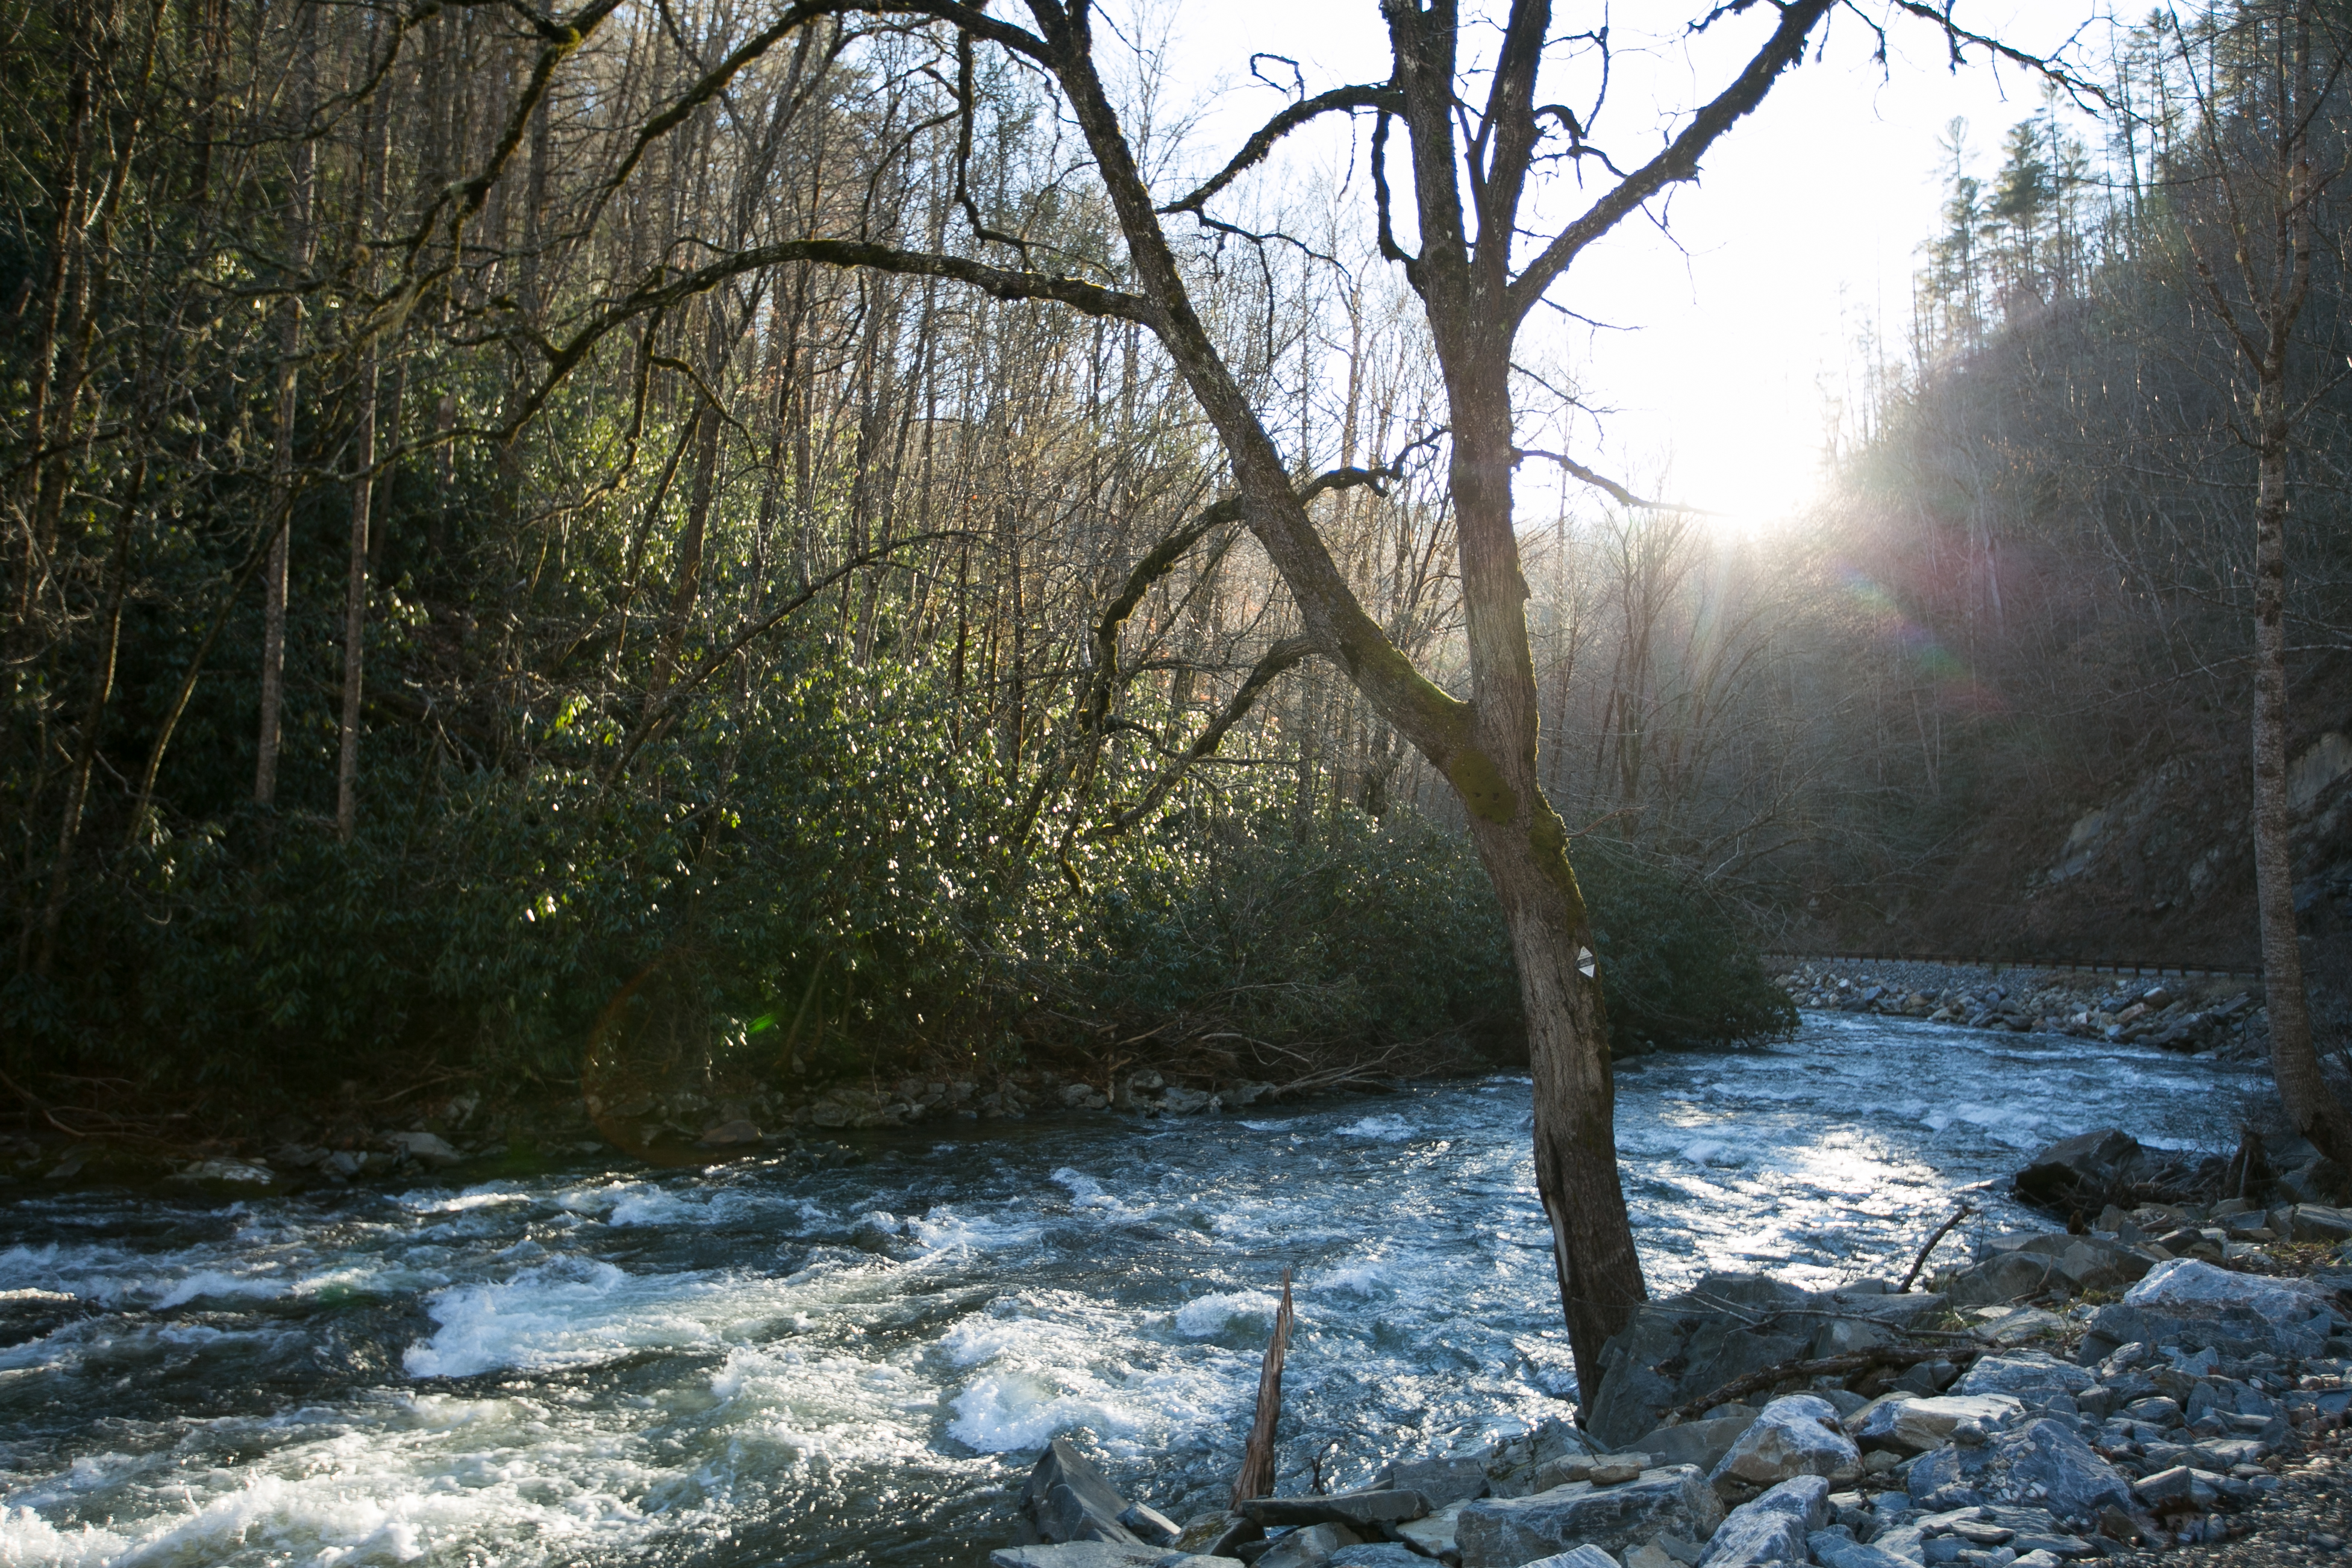 The new national forest management plan for Western North Carolina will govern the Nantahala and Pisgah National Forests.